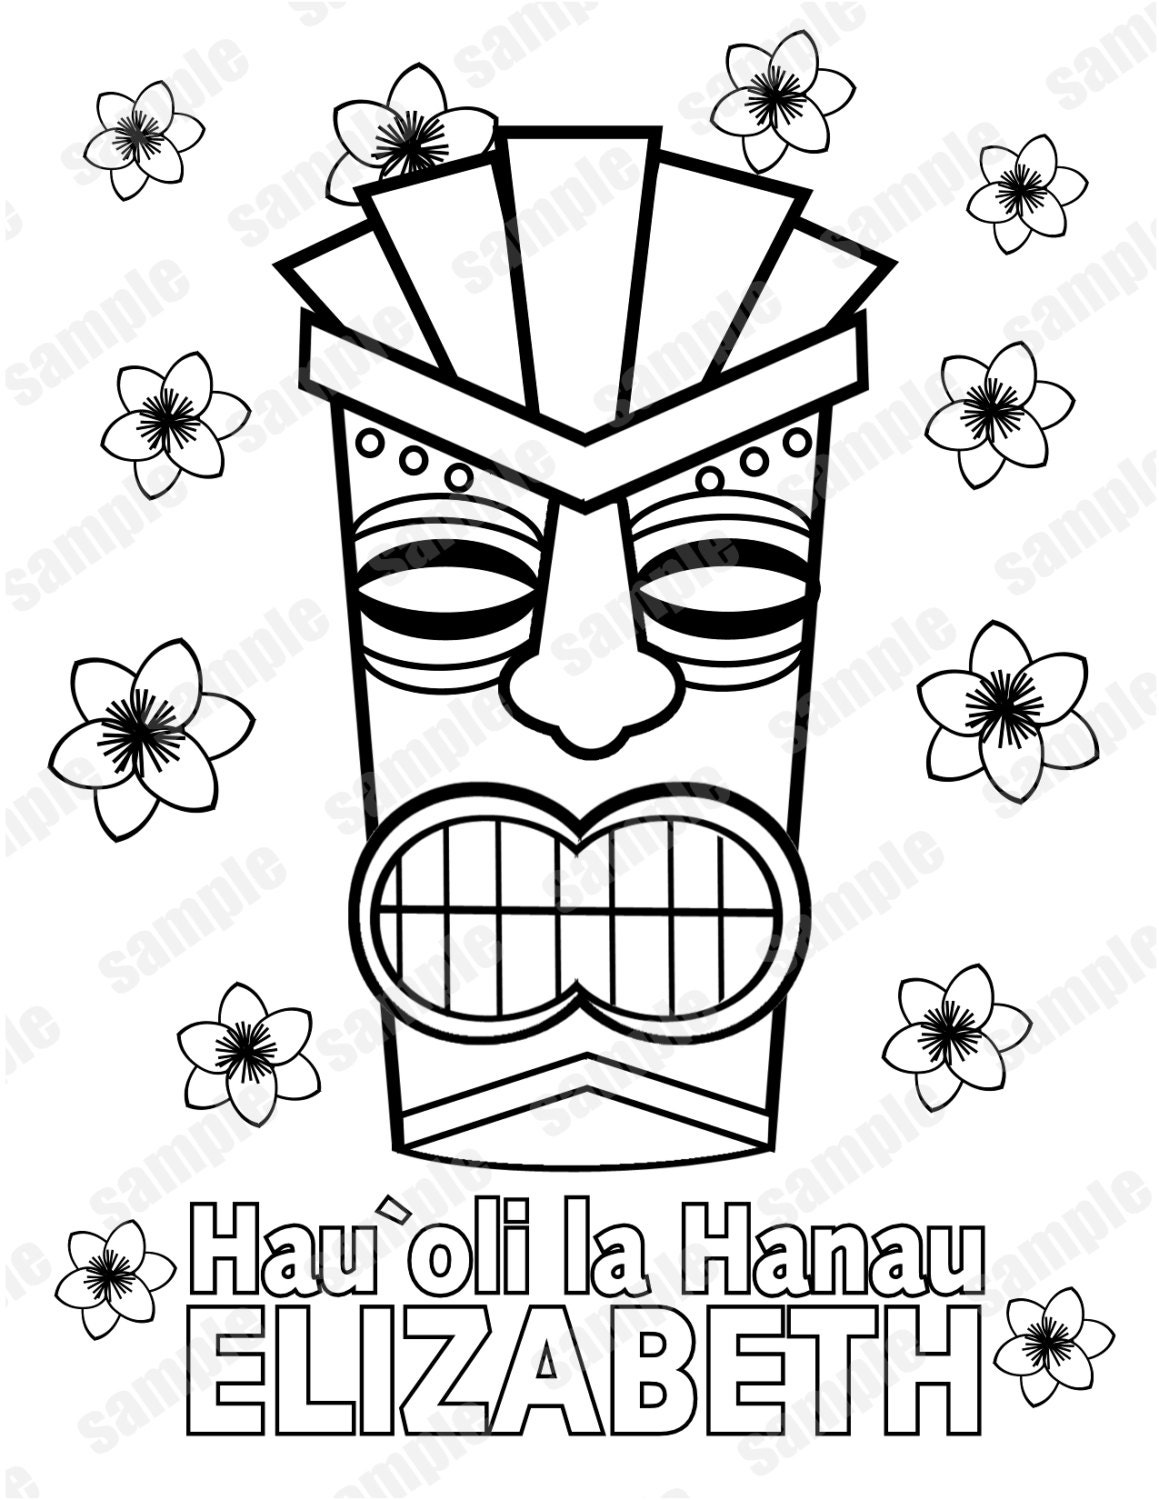 Tiki Head Coloring Pages Printable - Worksheet & Coloring Pages